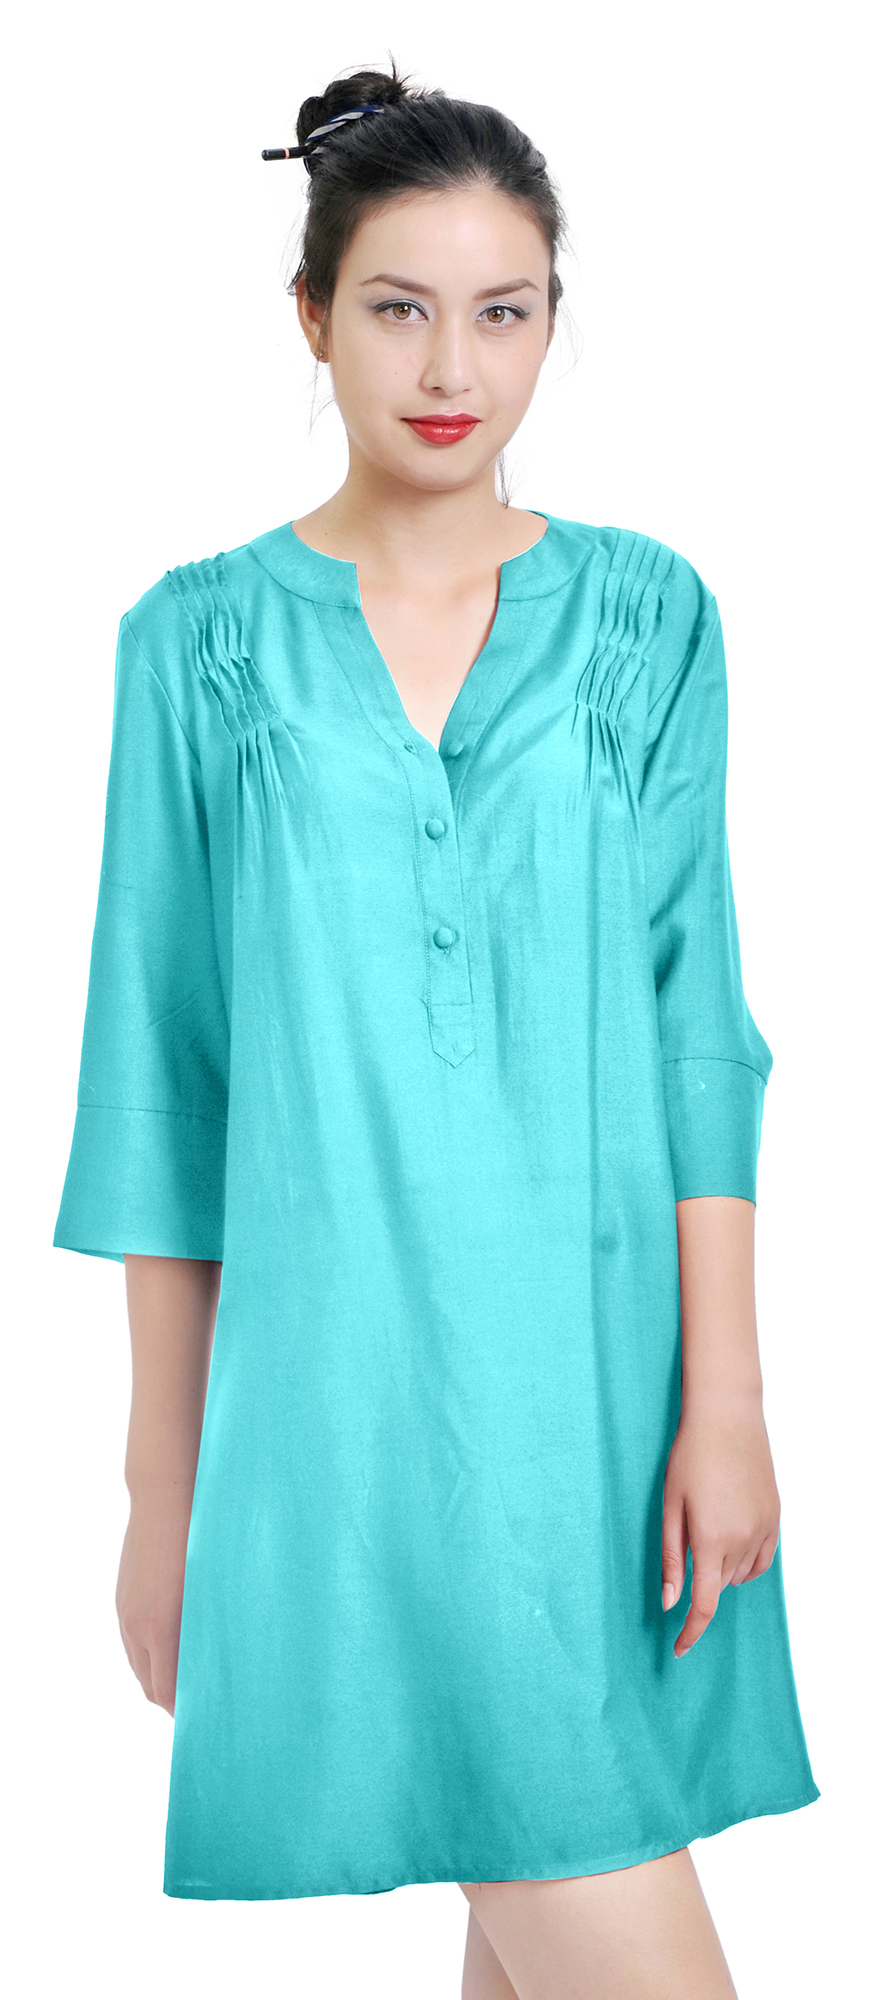 Made of the softest silk blend, the designs on this sleek tunic top are inspired by traditional sari fabric. Each tunic is beautifully enhanced on the front and back with traditional embroidery that is hand-done by women artisans in Northern India.